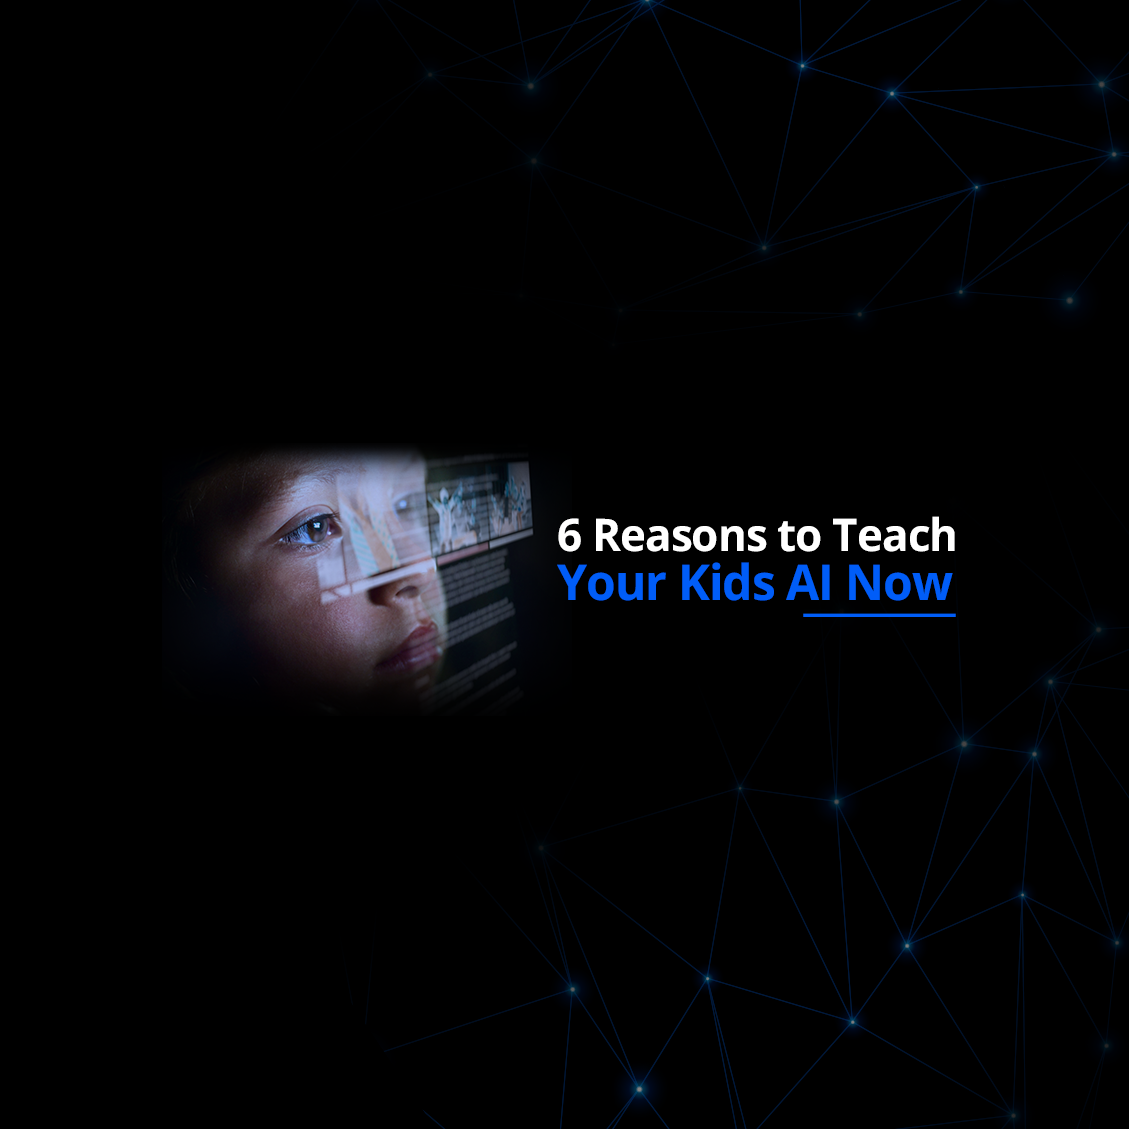 6 Reasons to Teach Your Kids AI Now